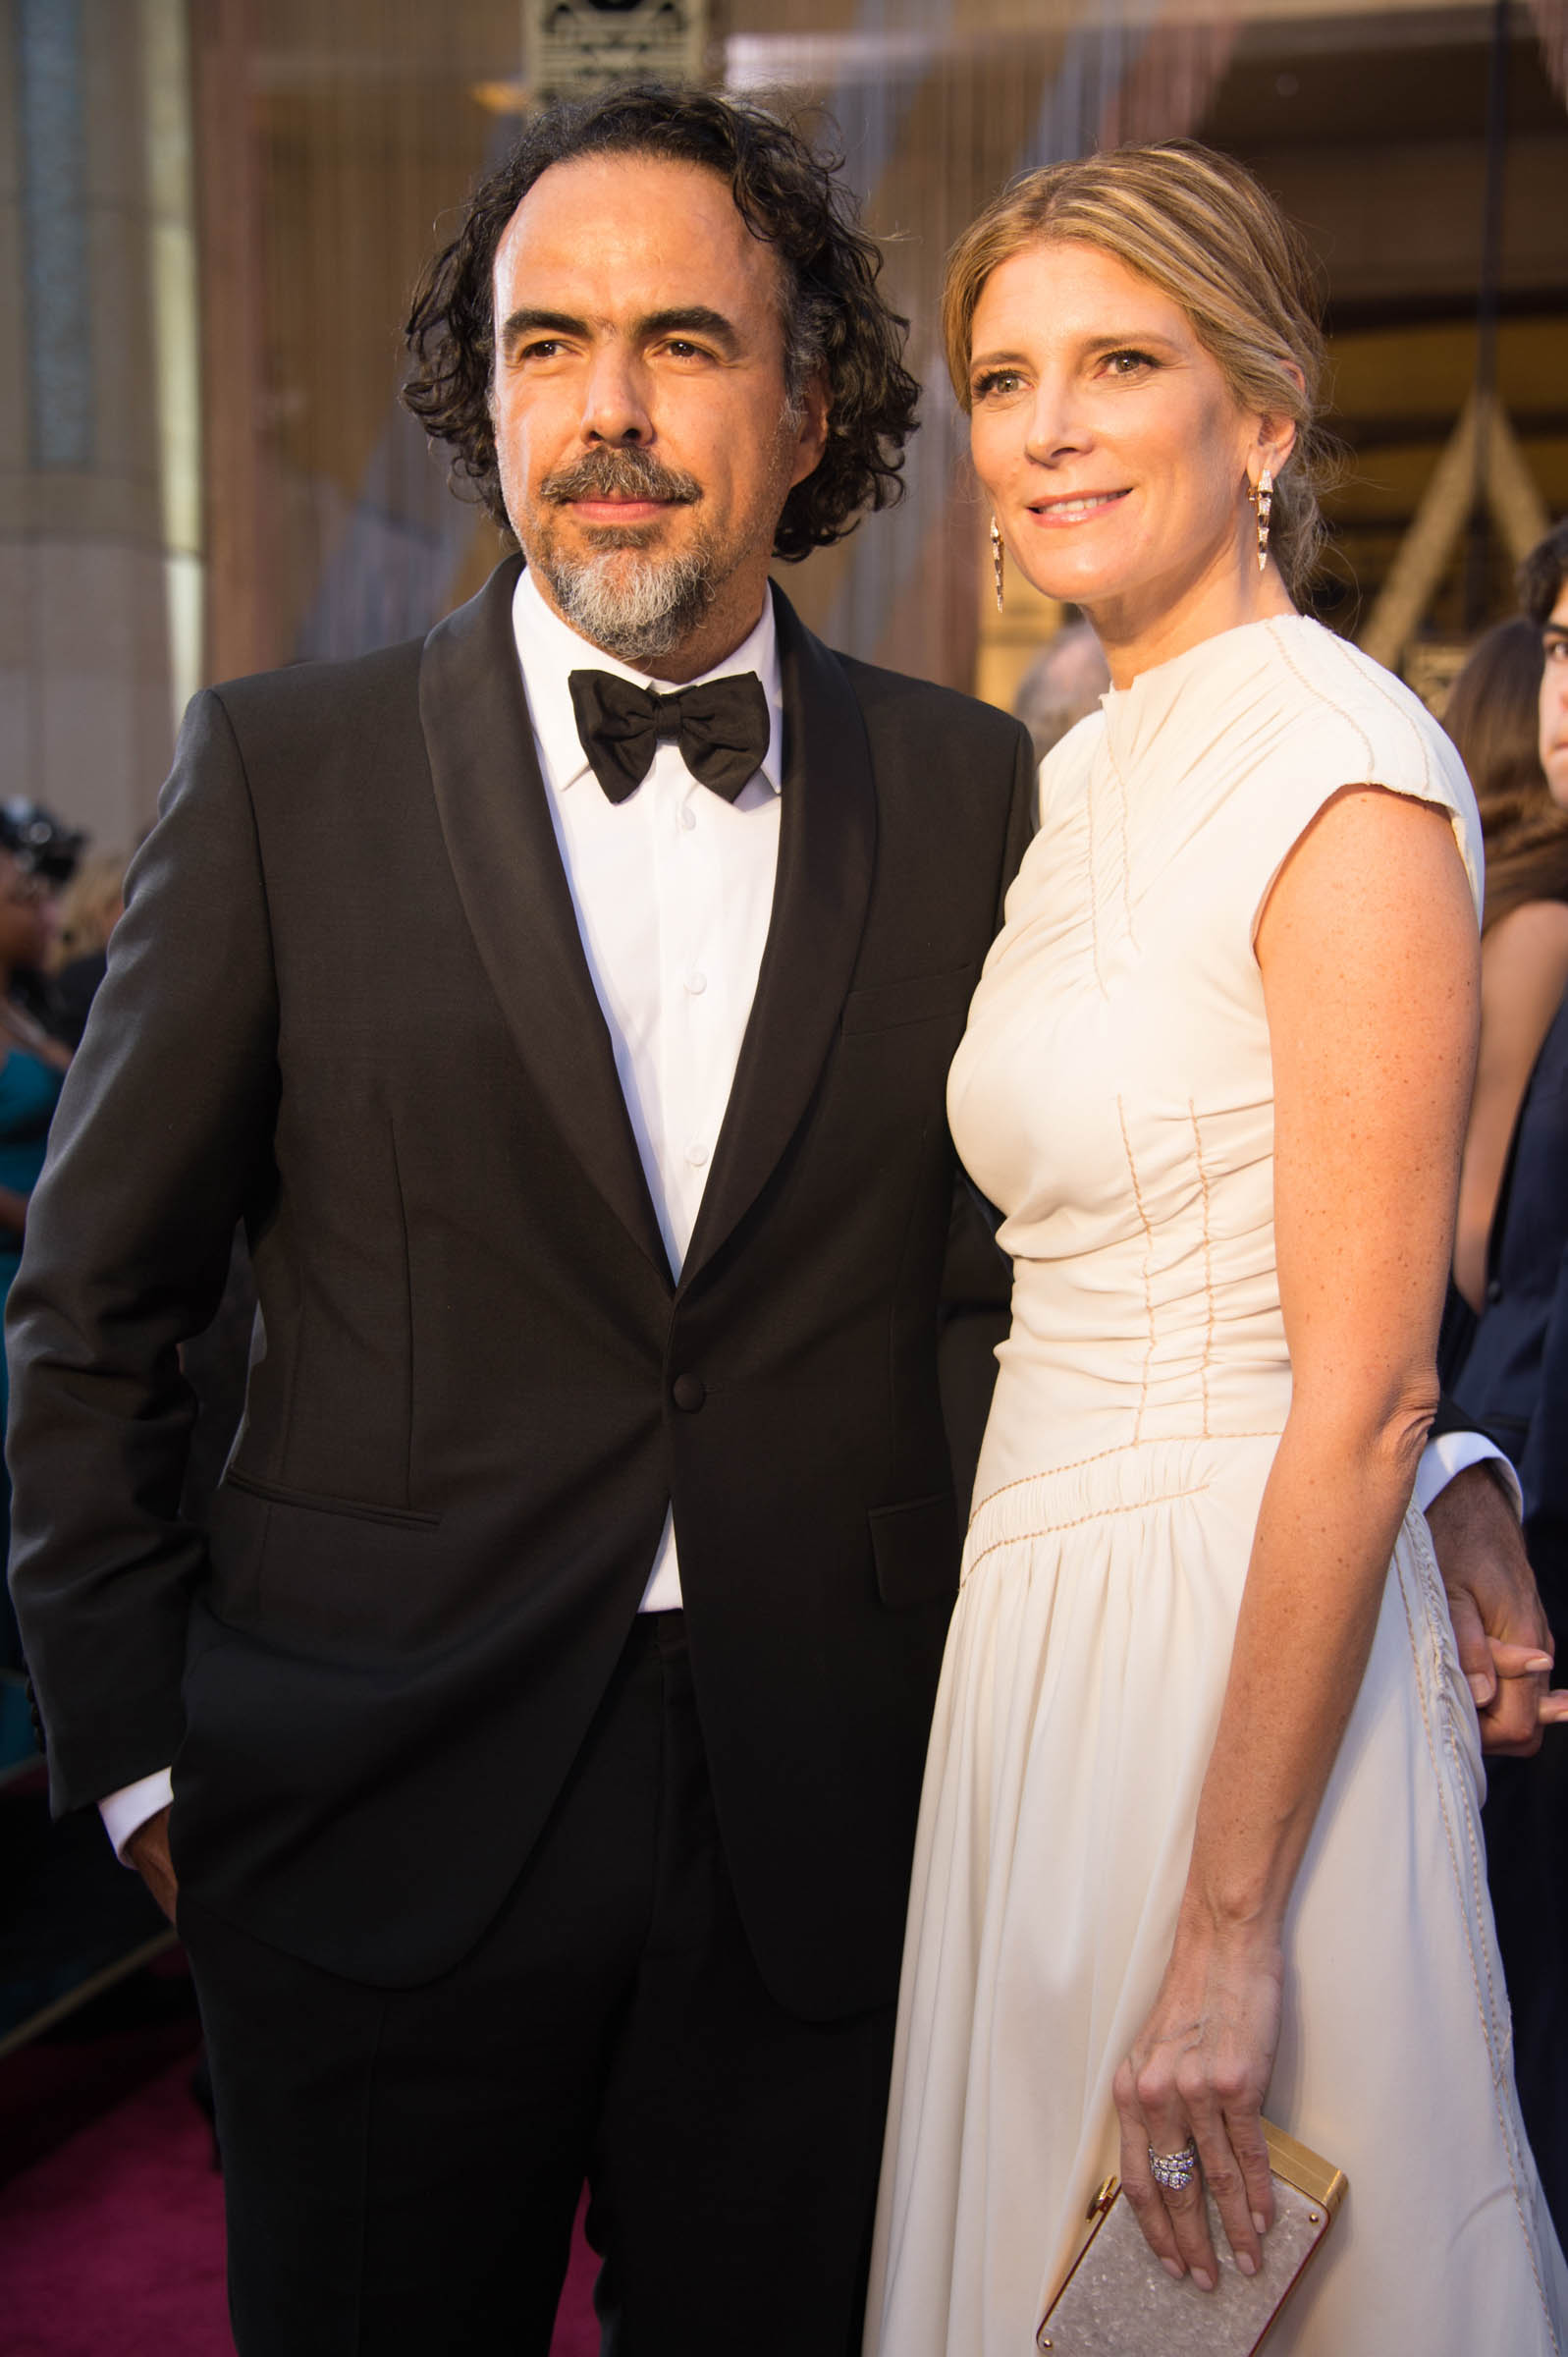 Oscar®-nominee, Alejandro Gonzalez Iñarritu and guest arrive at The 88th Oscars® at the Dolby® Theatre in Hollywood, CA on Sunday, February 28, 2016. Photo Credit: Phil McCarten / ©A.M.P.A.S.